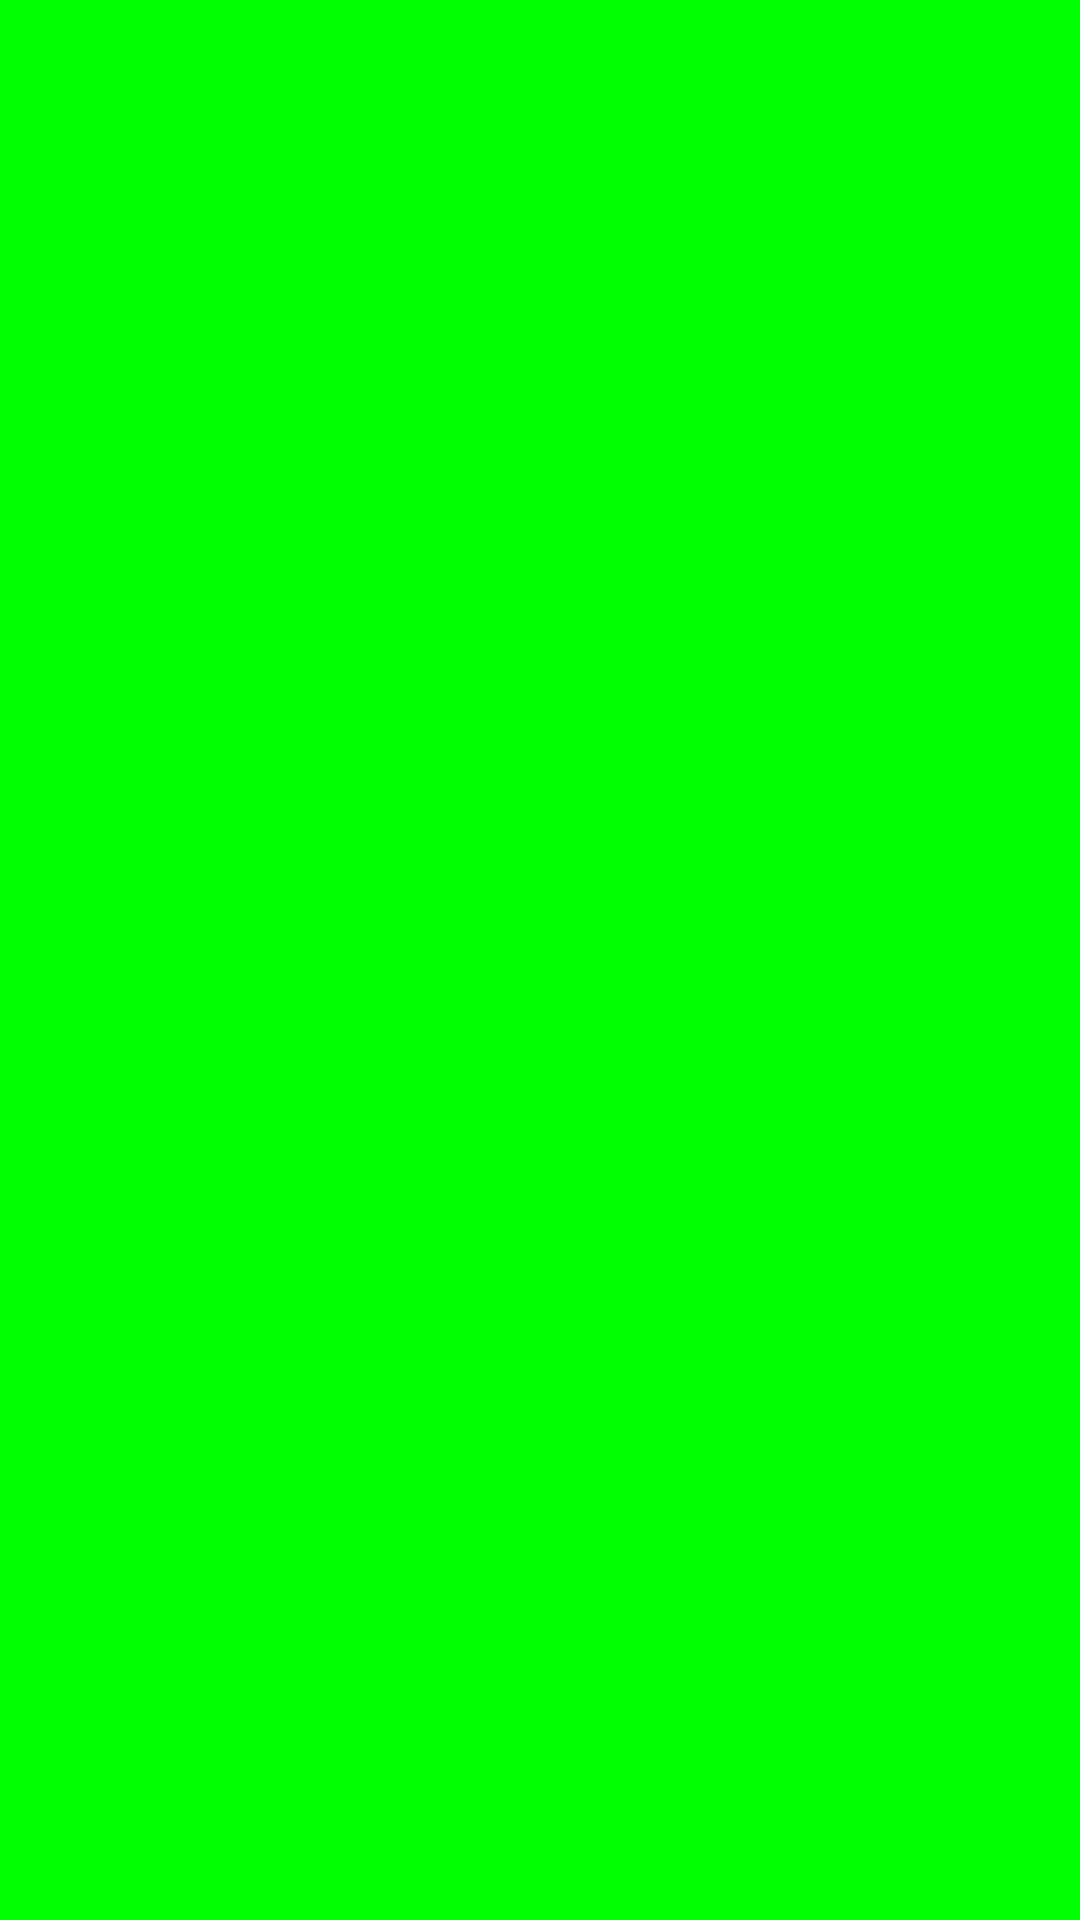 1080x1920 Green X11 Gui Green Solid Color Background